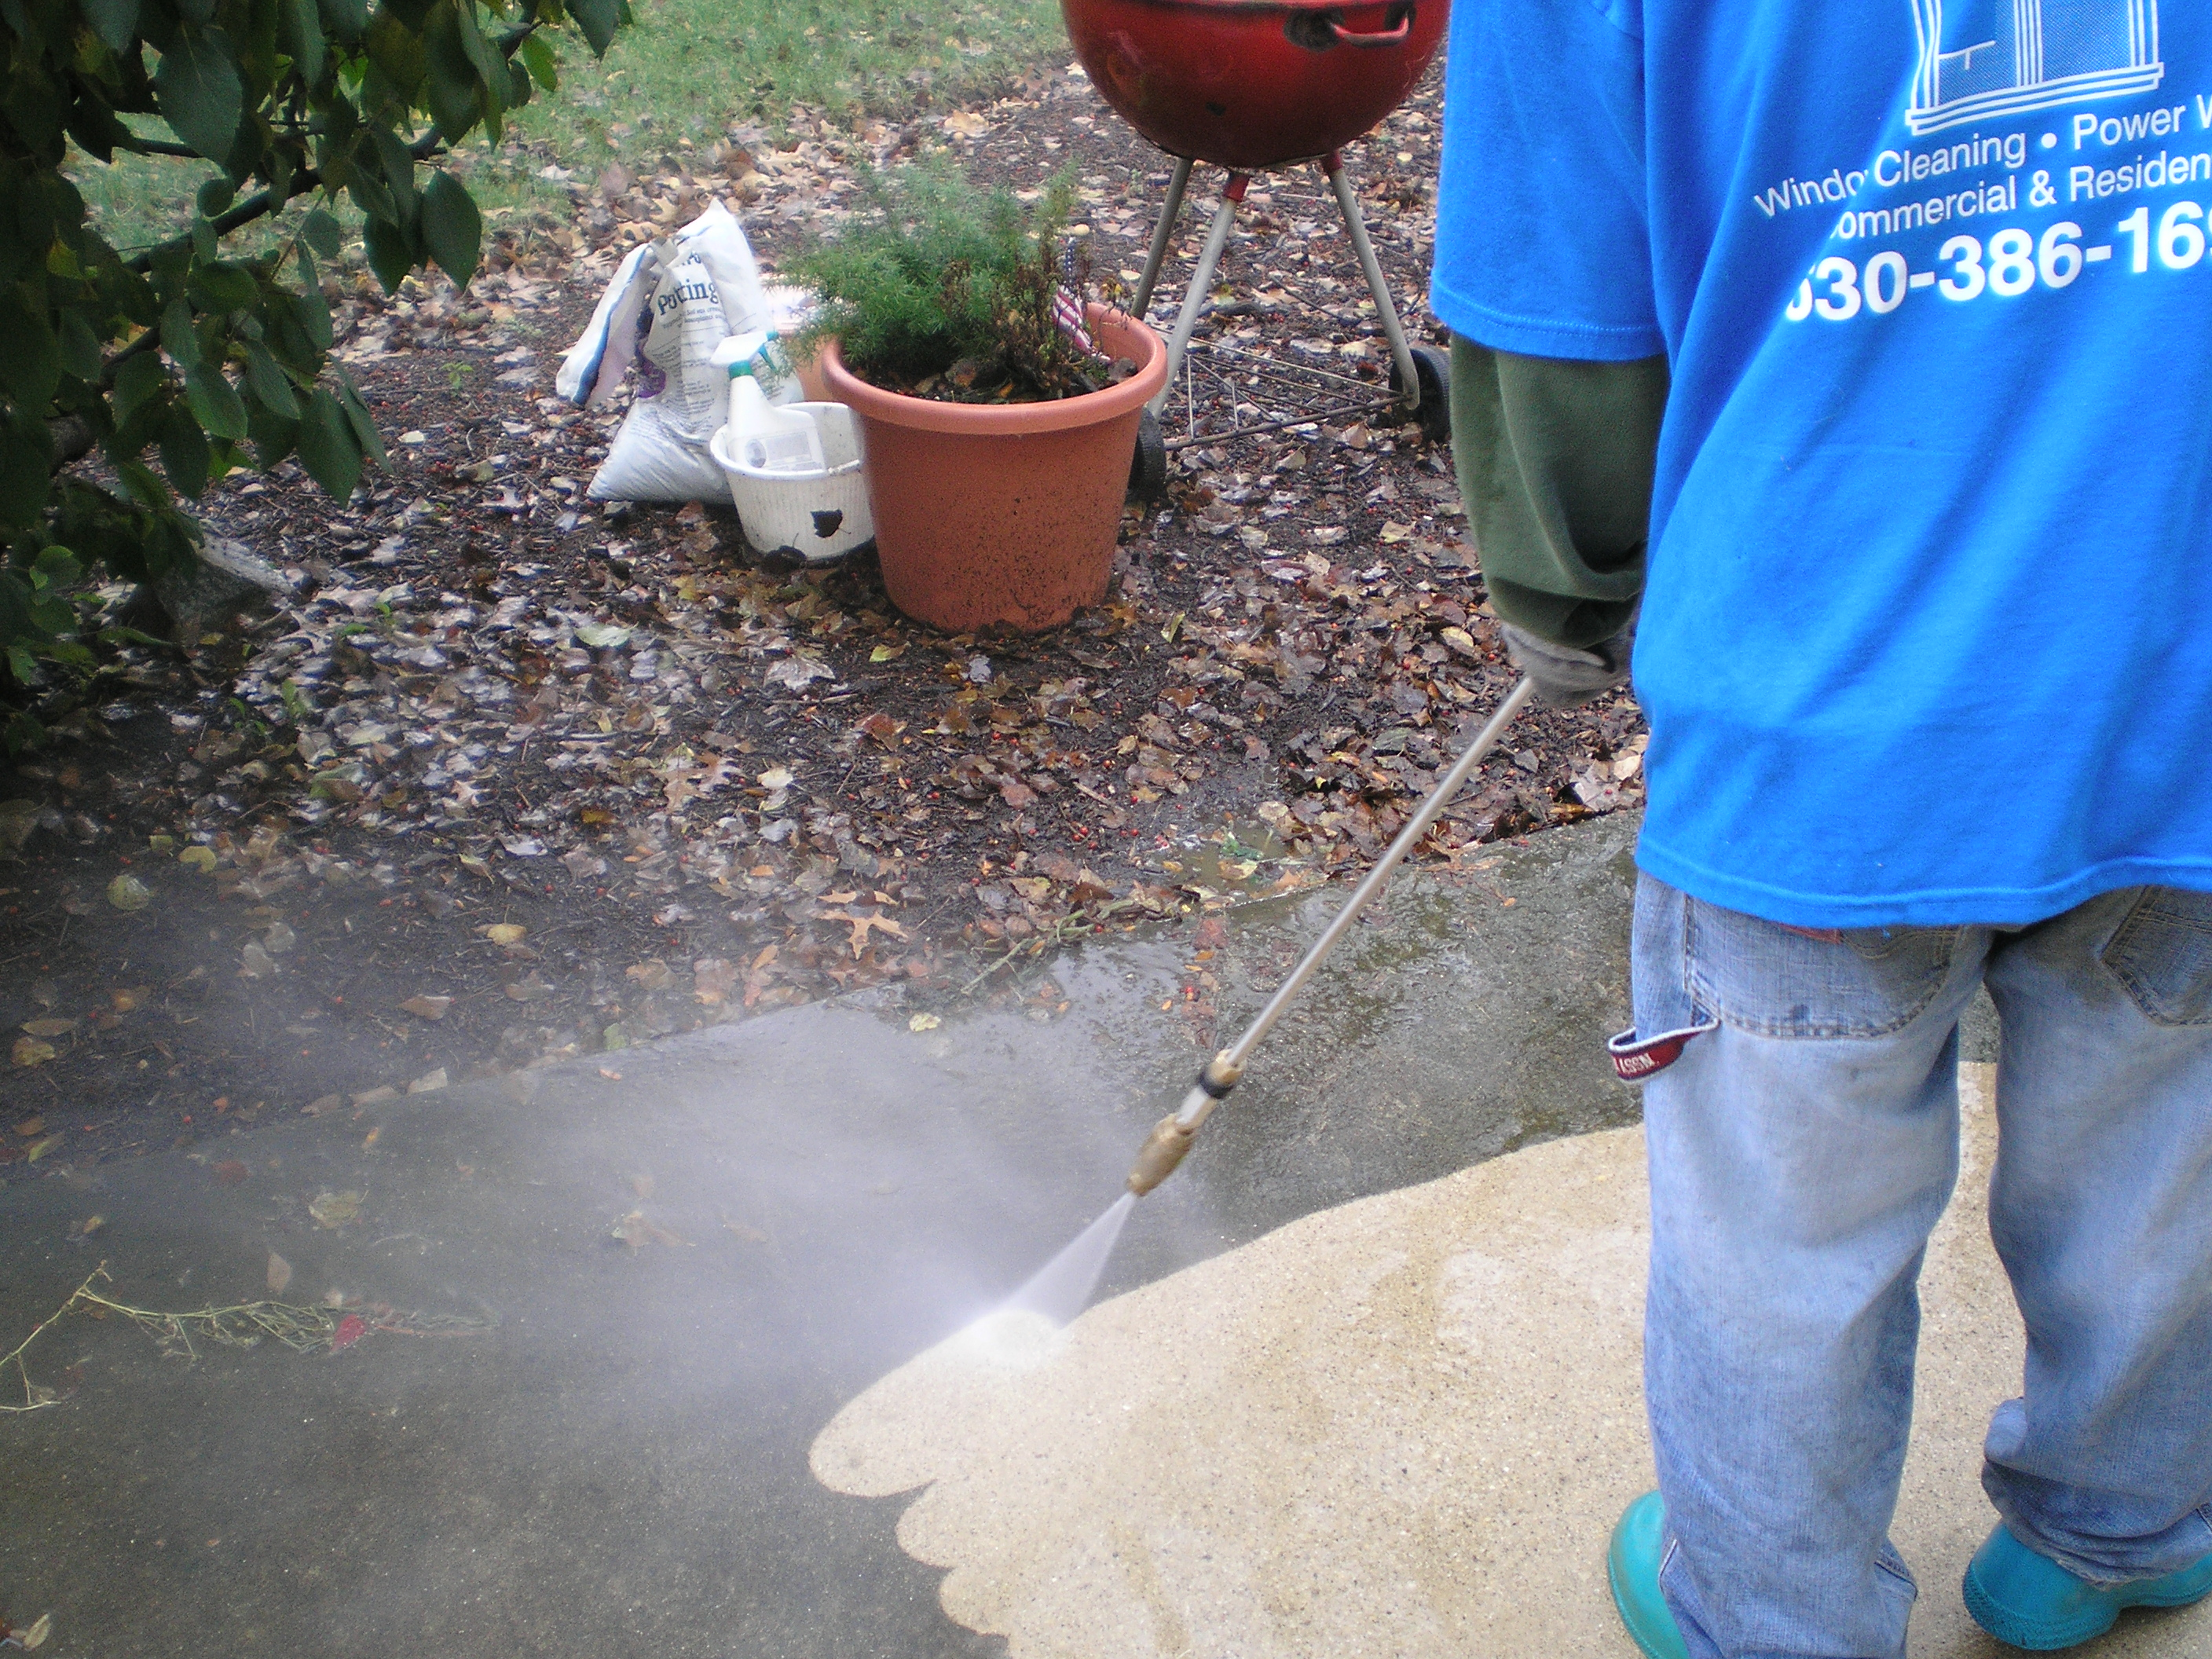 P.E.C. Services Works With Homeowner And Business Owners Alike To Provide Pressure  Washing Services That Will Not Disrupt The Flow Of Business Or Lifestyle.